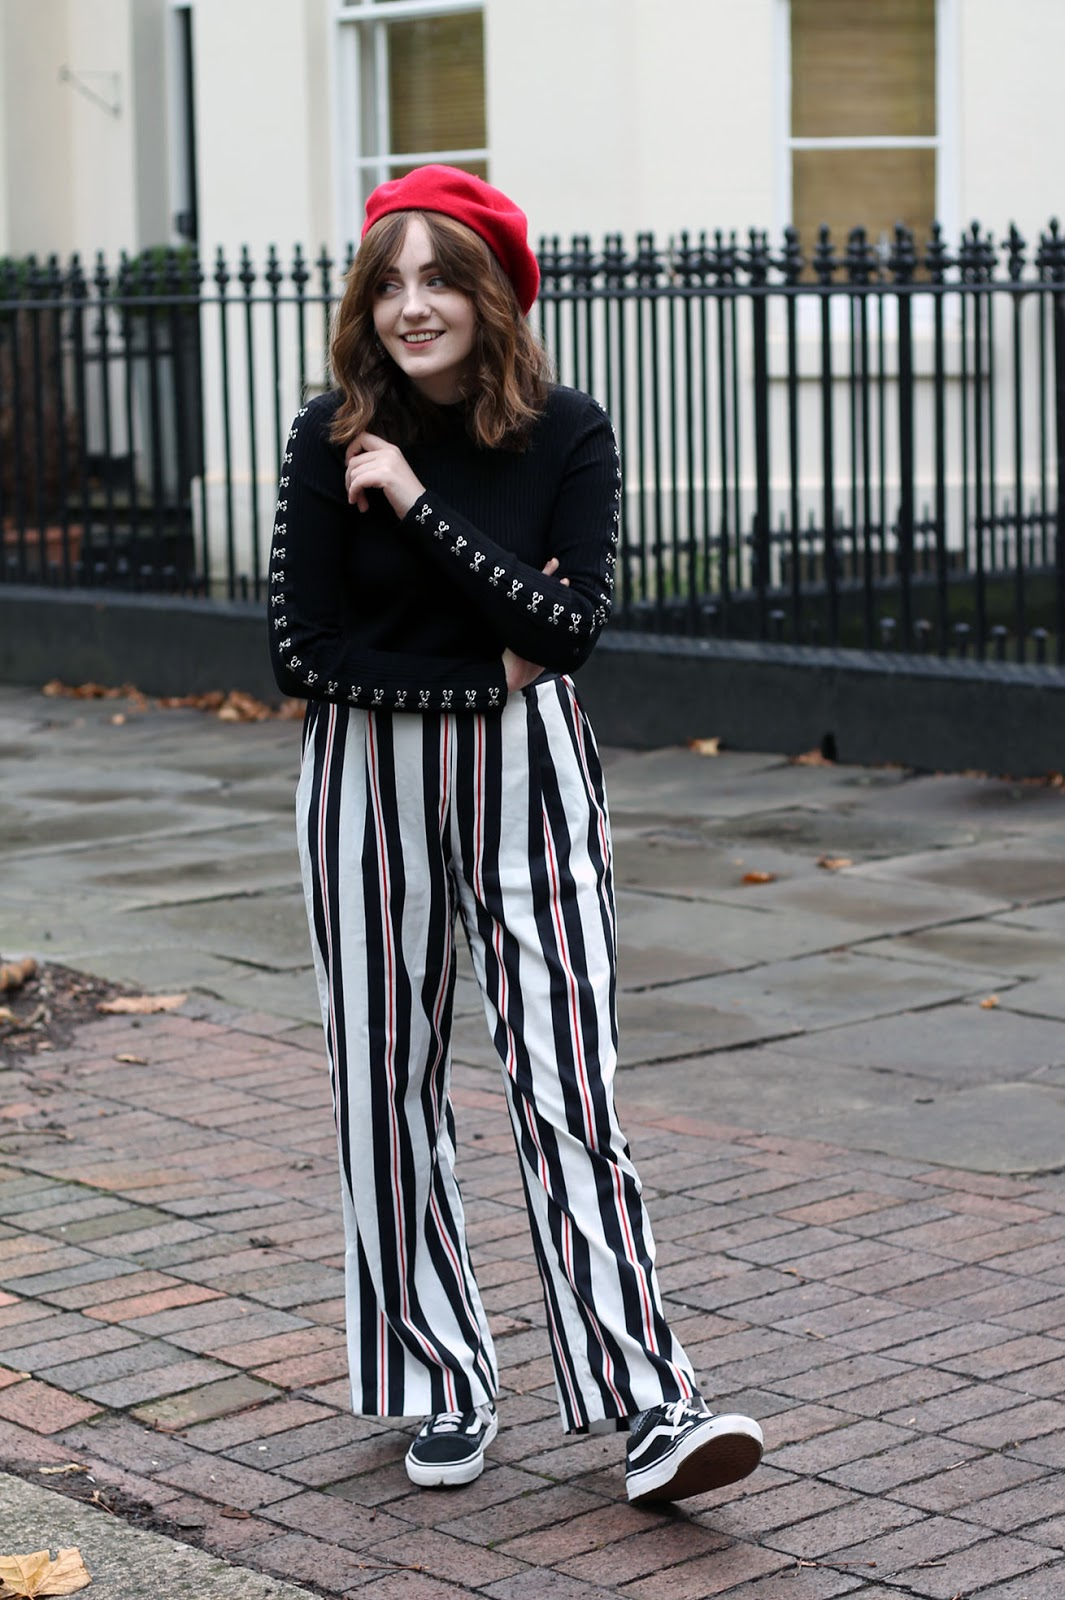 autumn outfit by Liverpool fashion blogger featuring red beret, black long sleeve crop jumper, red, white and black striped trousers and black vans old skool trainers